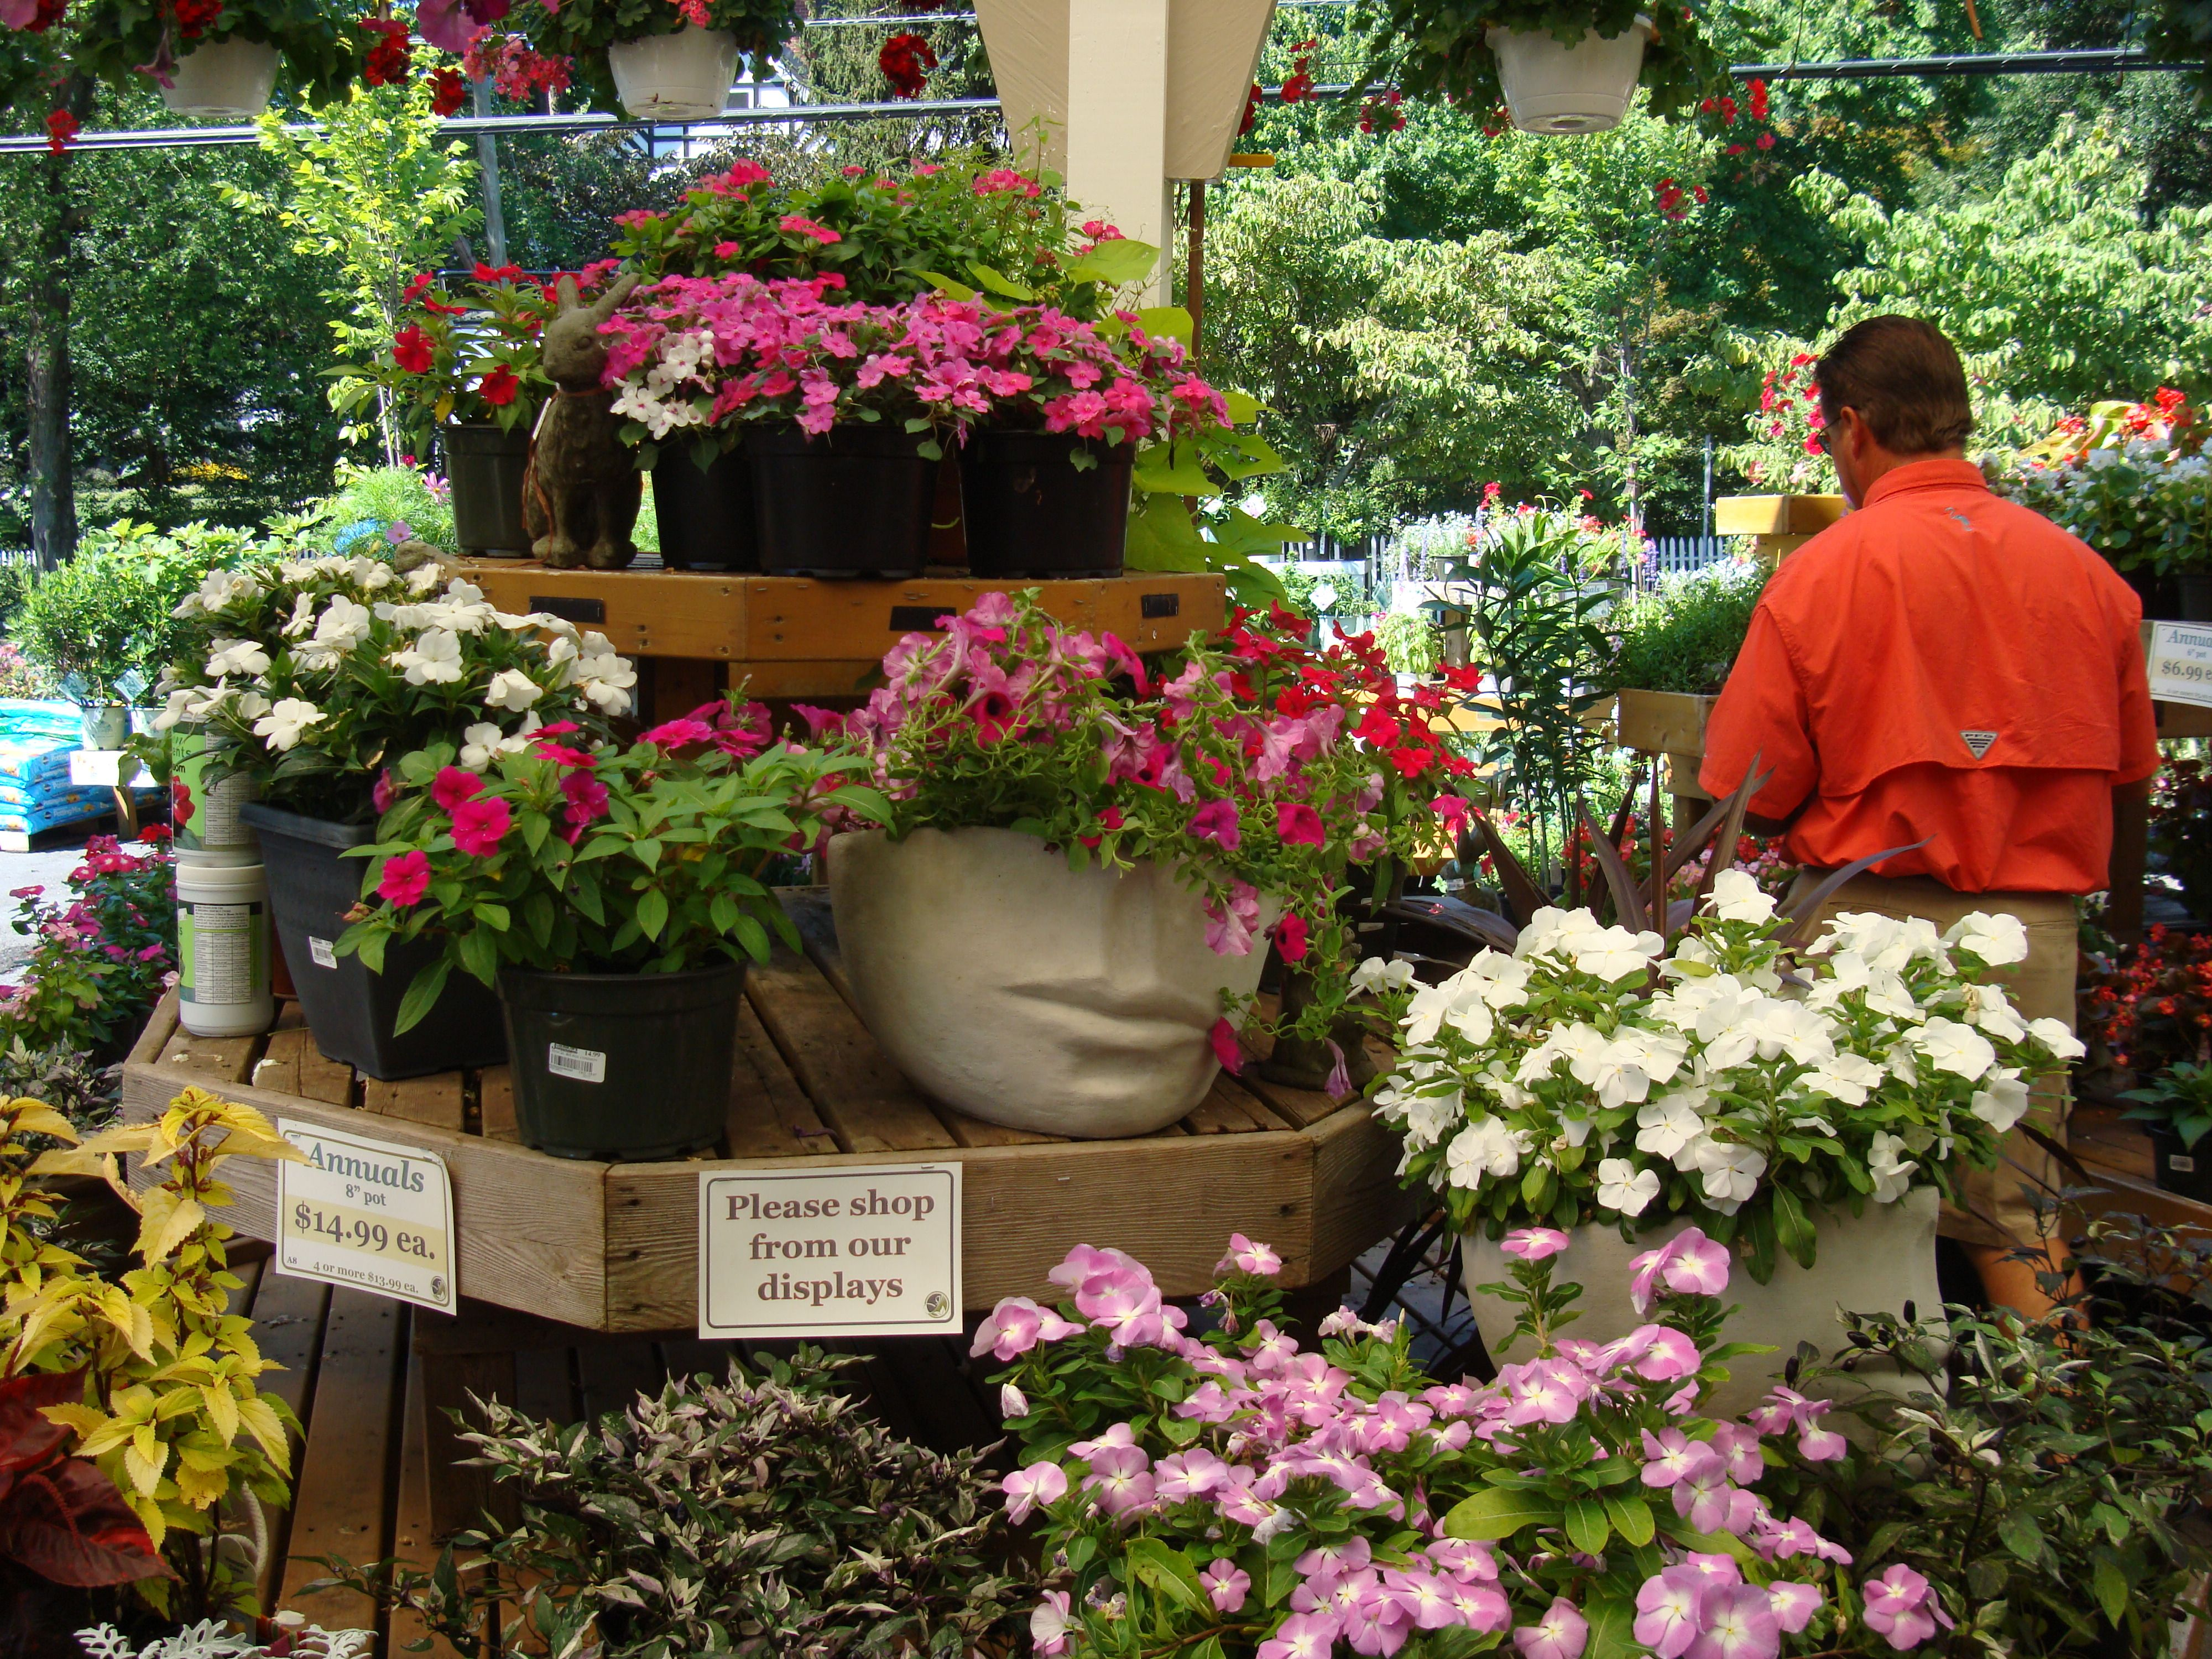 Johnson S Florist And Garden Centers Kensington Md With Images